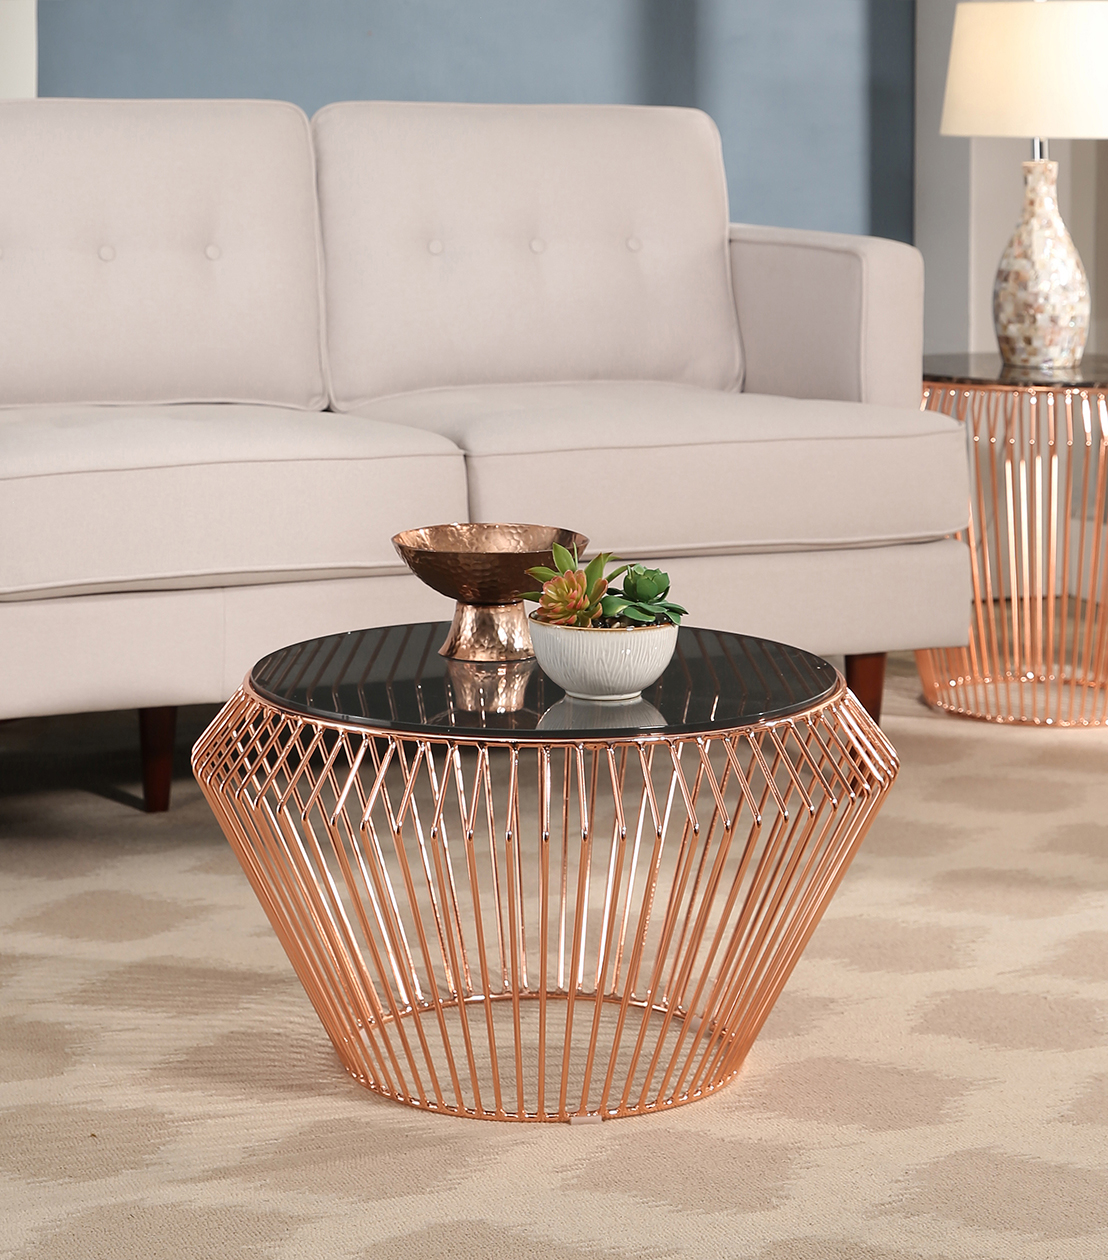 accent tables termoli coffee table rose gold cof rsg office reclaimed wood entry legs chinese jar lamps brass nest marble phoenix furniture outdoor covers corner storage cabinet